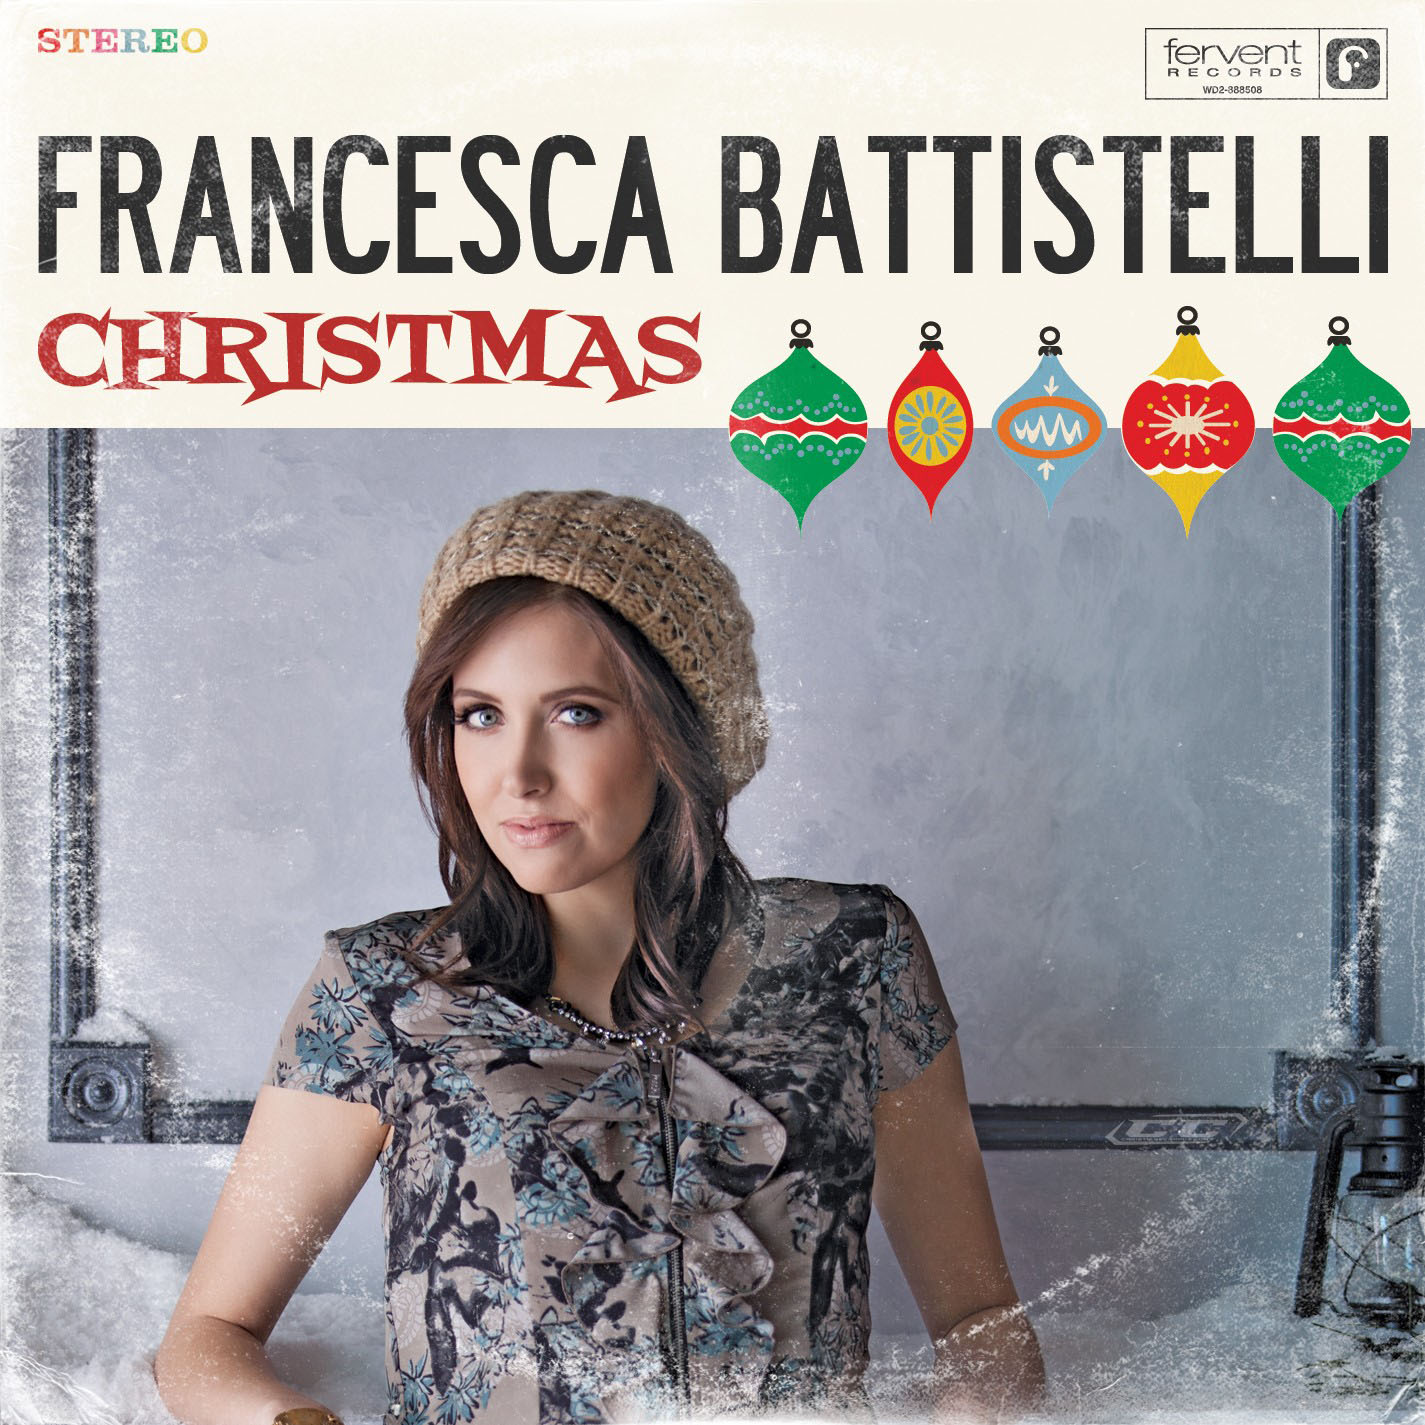 Francesca Battistelli - Christmas 2012 English Christian Christmas Album